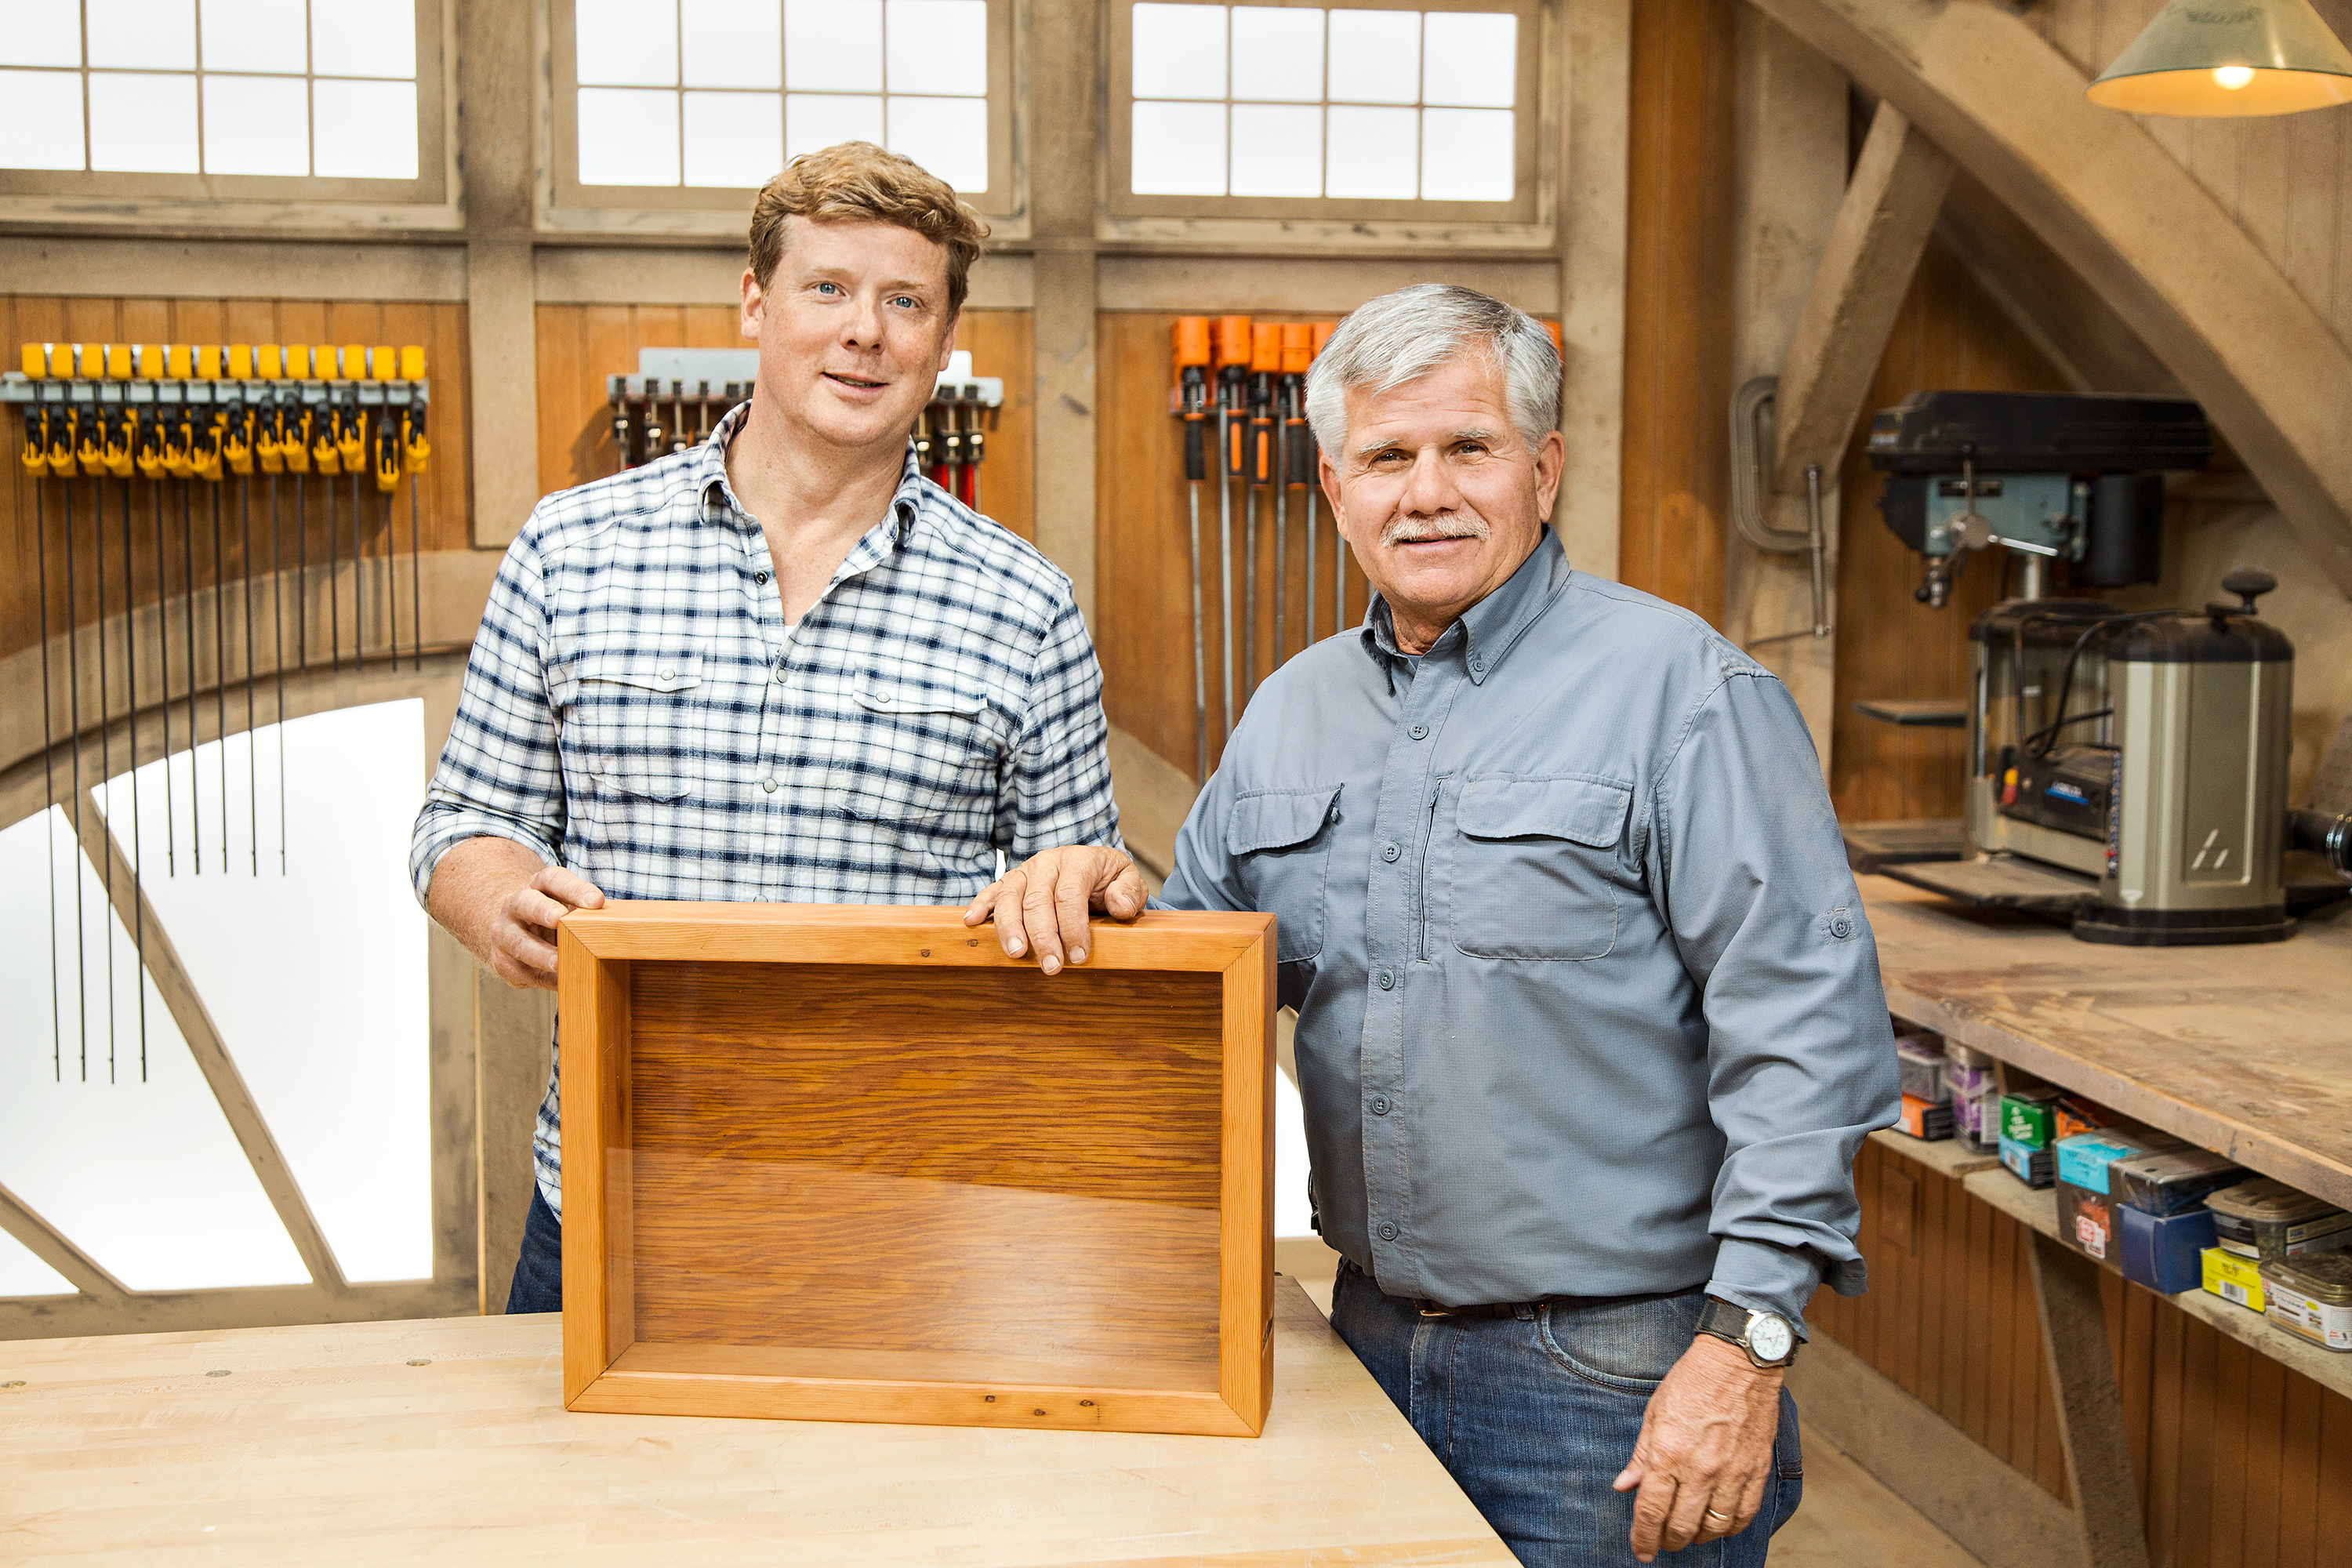 TOH general contractor Tom Silva and TOH host Kevin O'Connor proudly present their latest project, a glass-fronted shadow box. Filled with valued objects, such as those below, it keeps the keepsakes safe and makes them easy to admire.